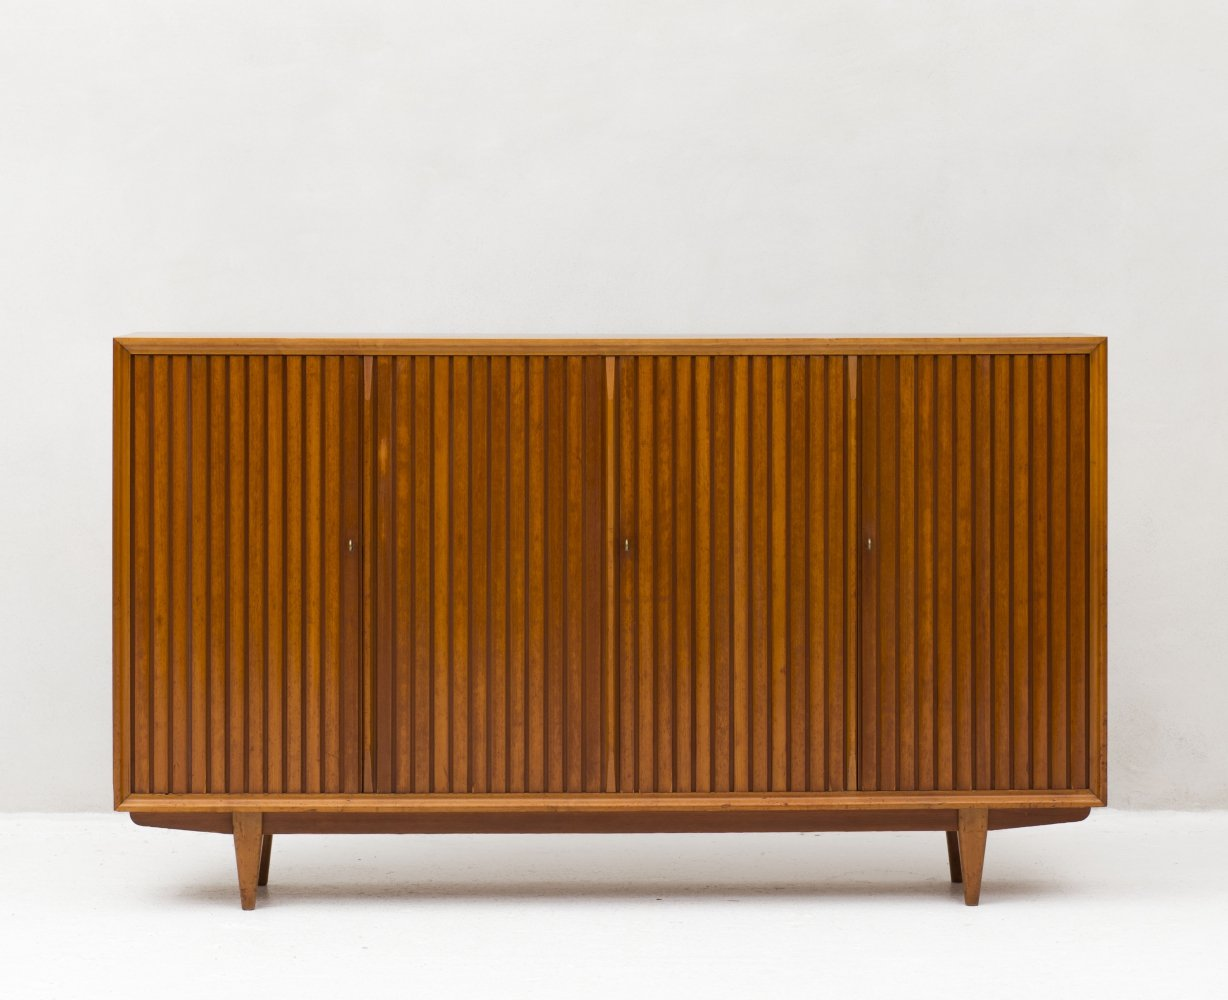 Sideboard by Leo Bub for Bub Wertmöbel, 1950s